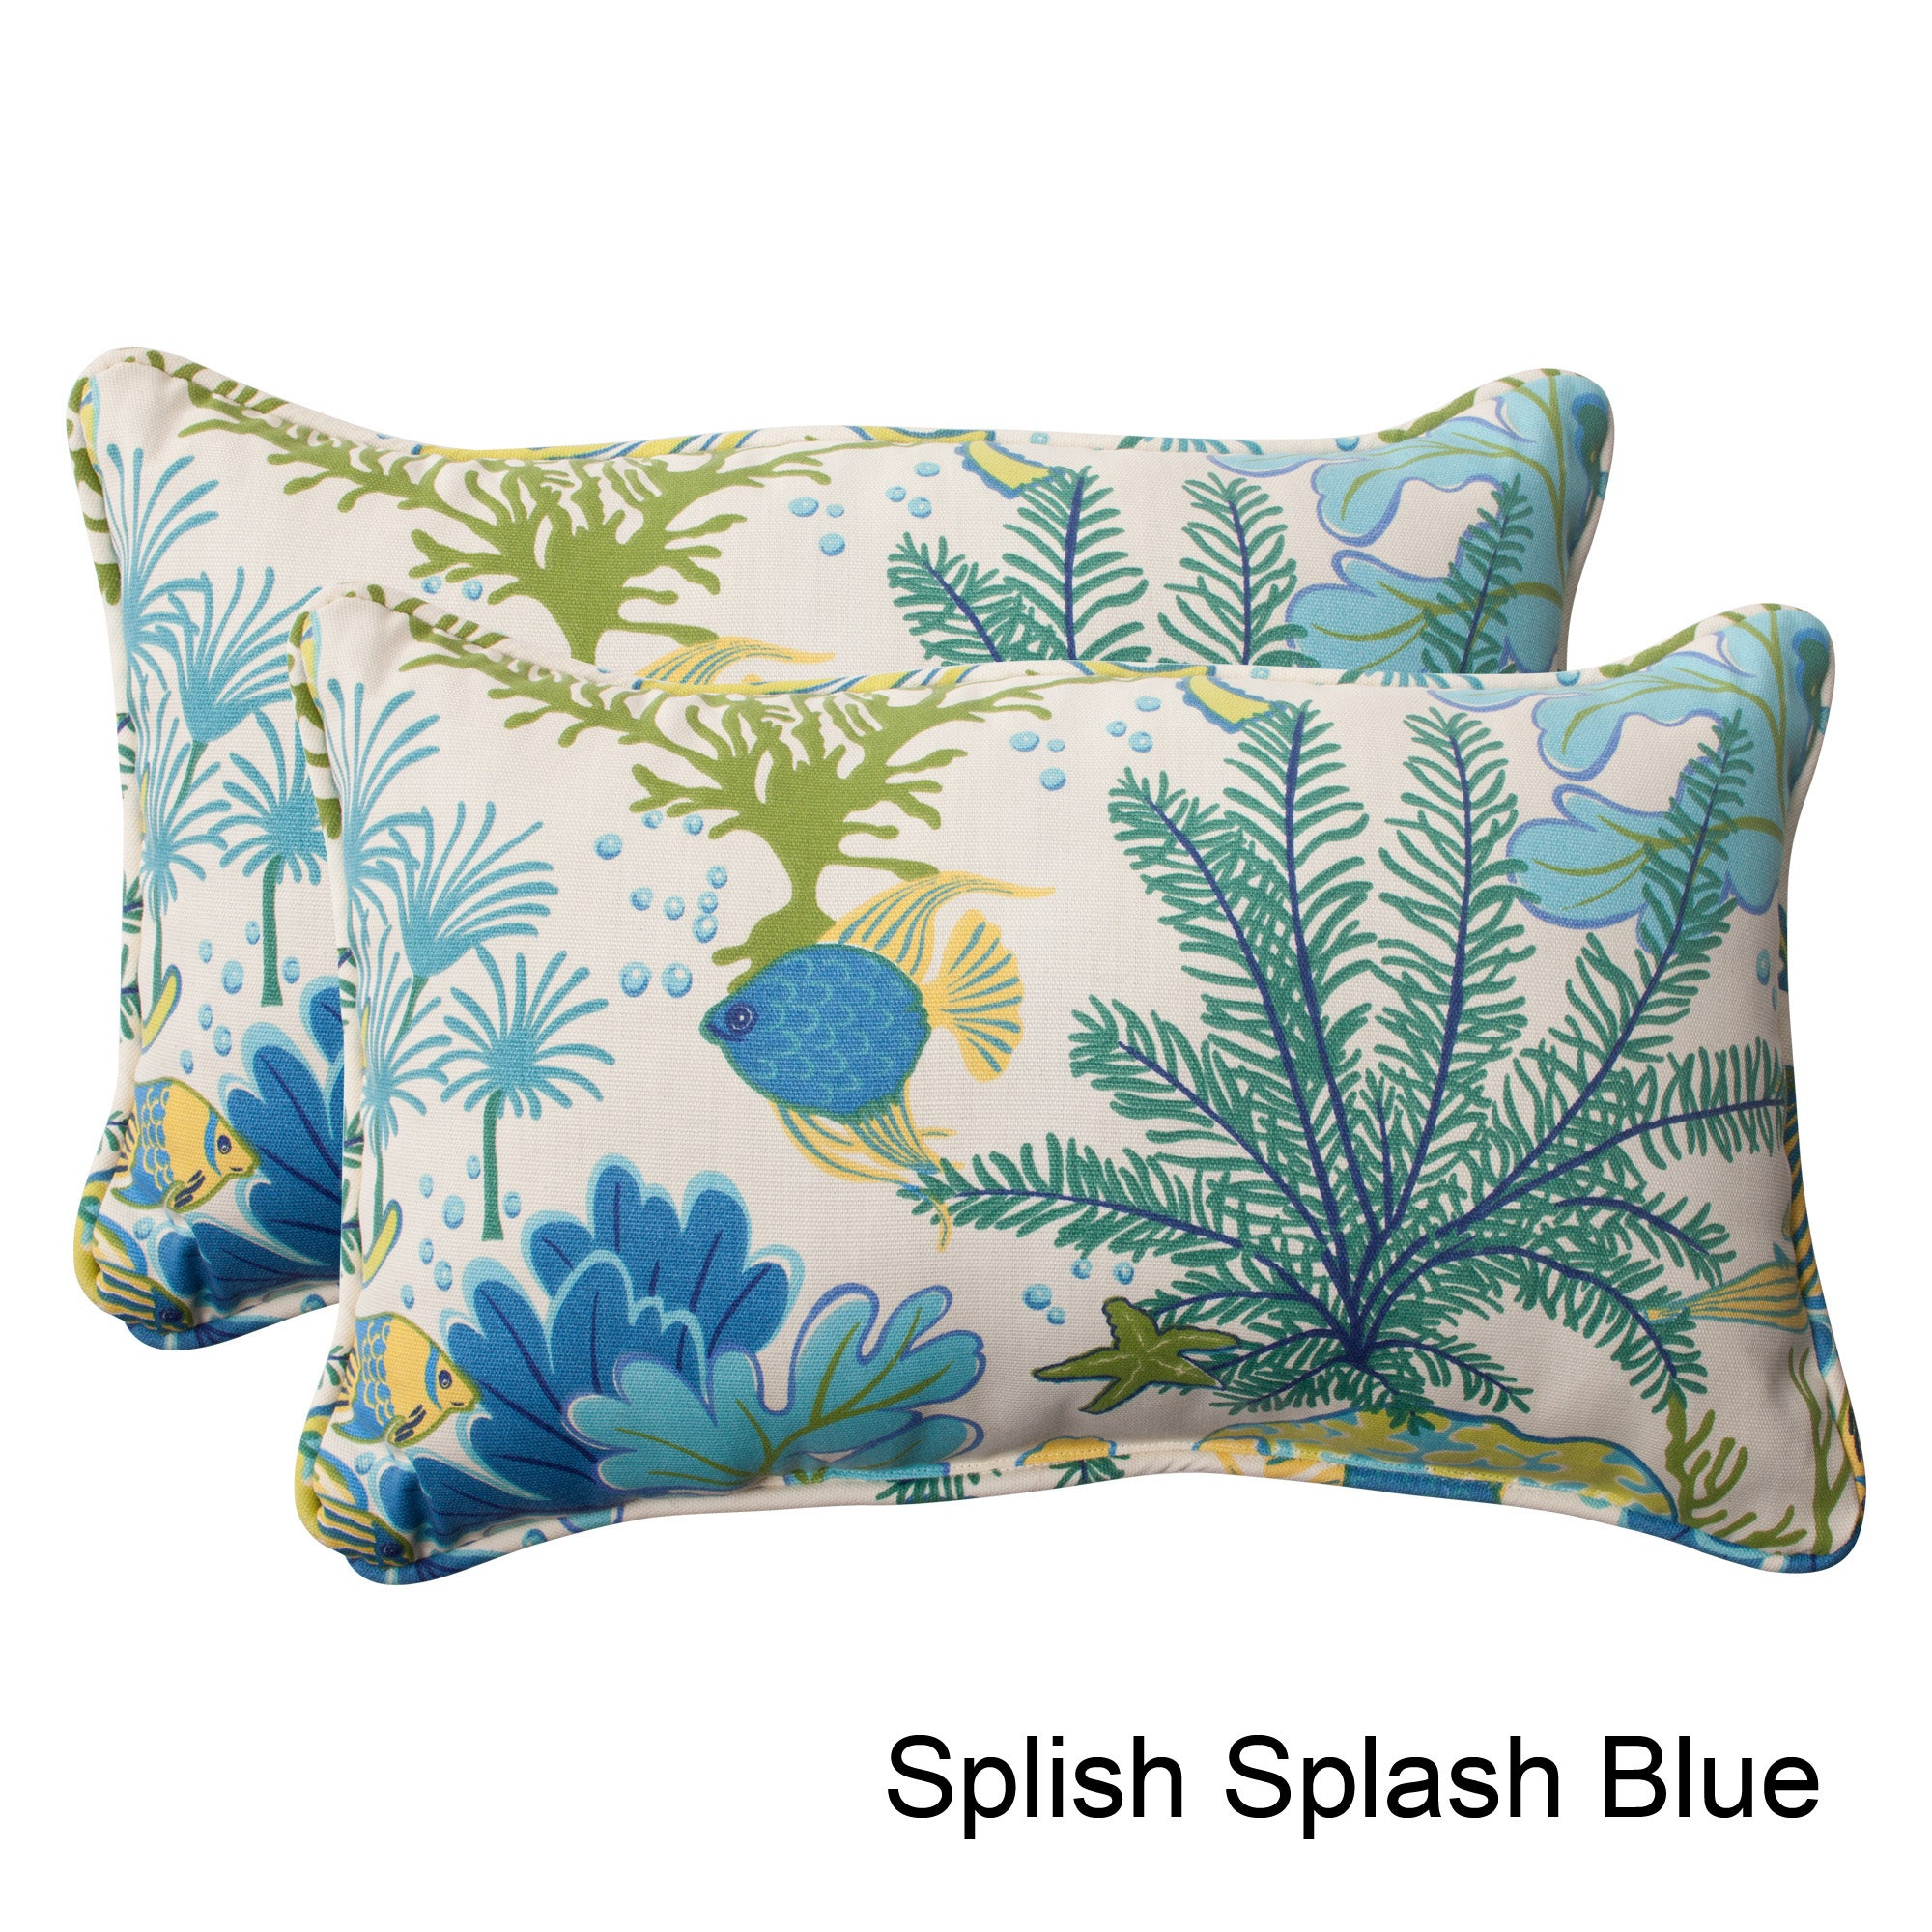 Pillow Perfect Splish Splash Outdoor Throw Pillows Set Of 2